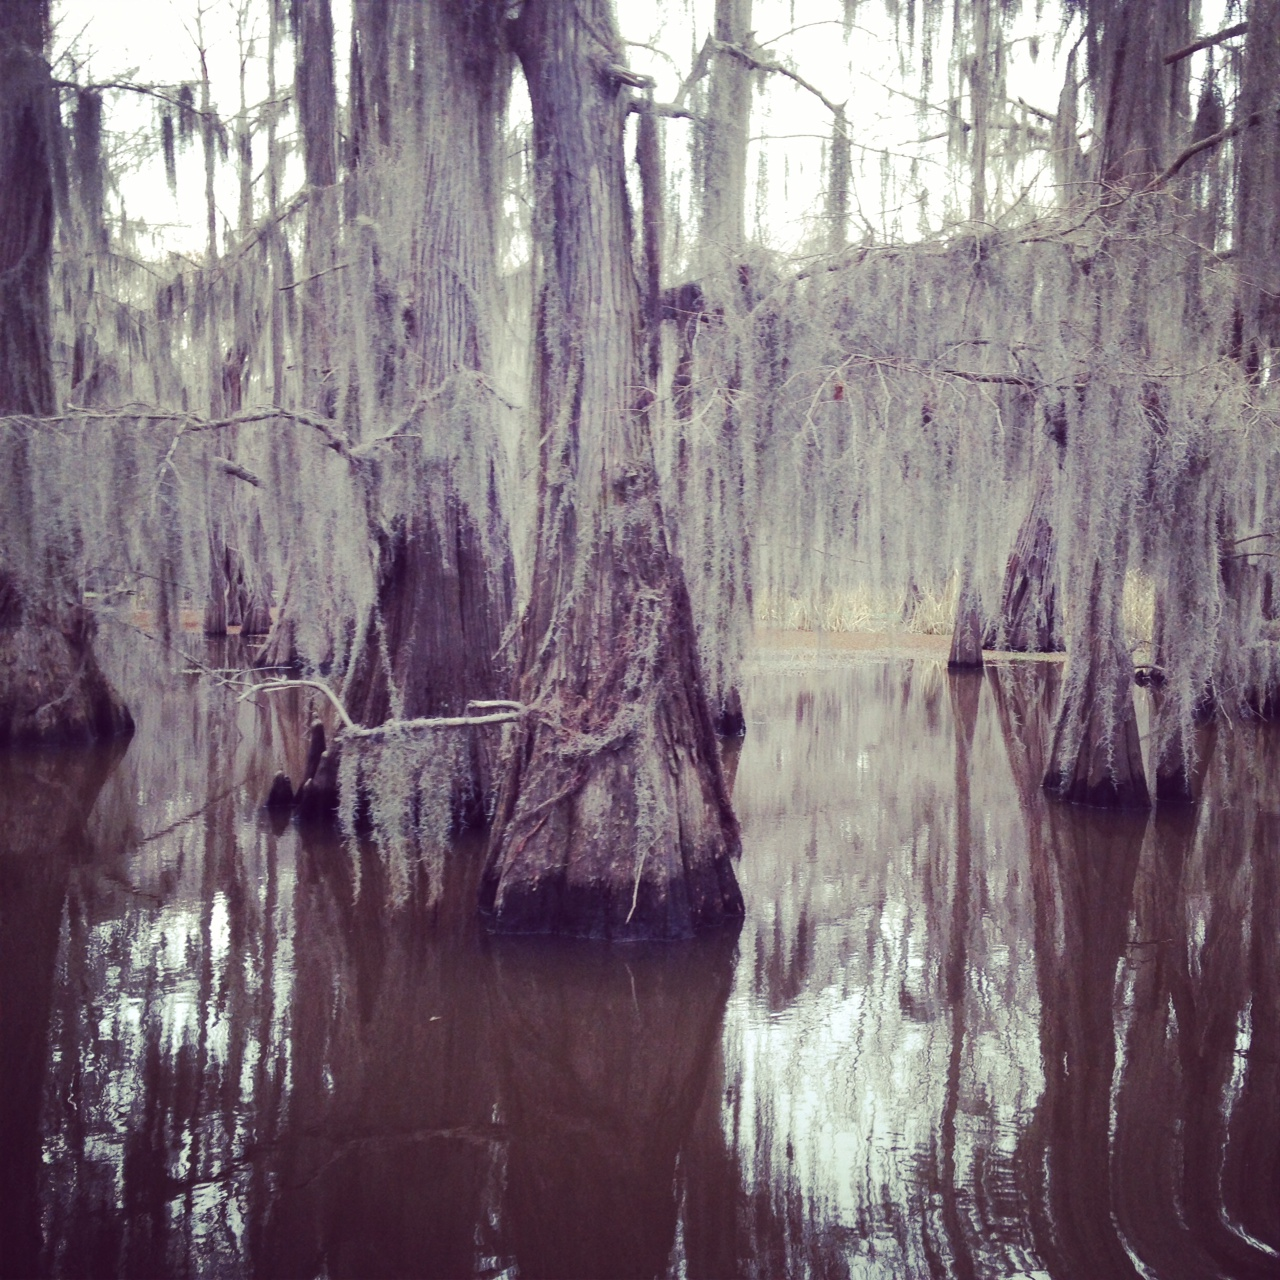 Caddo Lake, March 2014